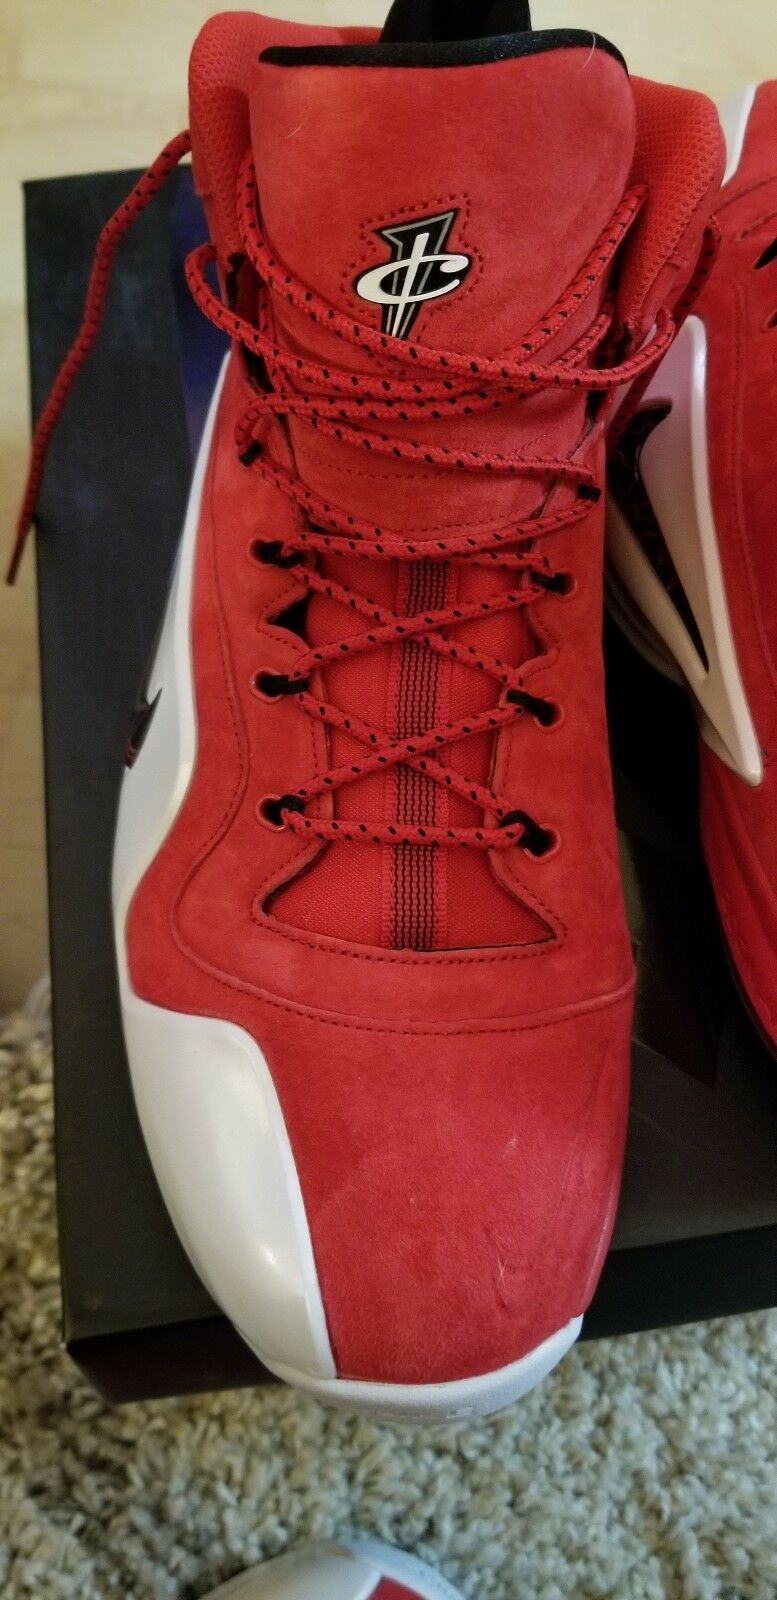 Zoom Penny VI REAIL 185 P Suede RED WHITE and Black